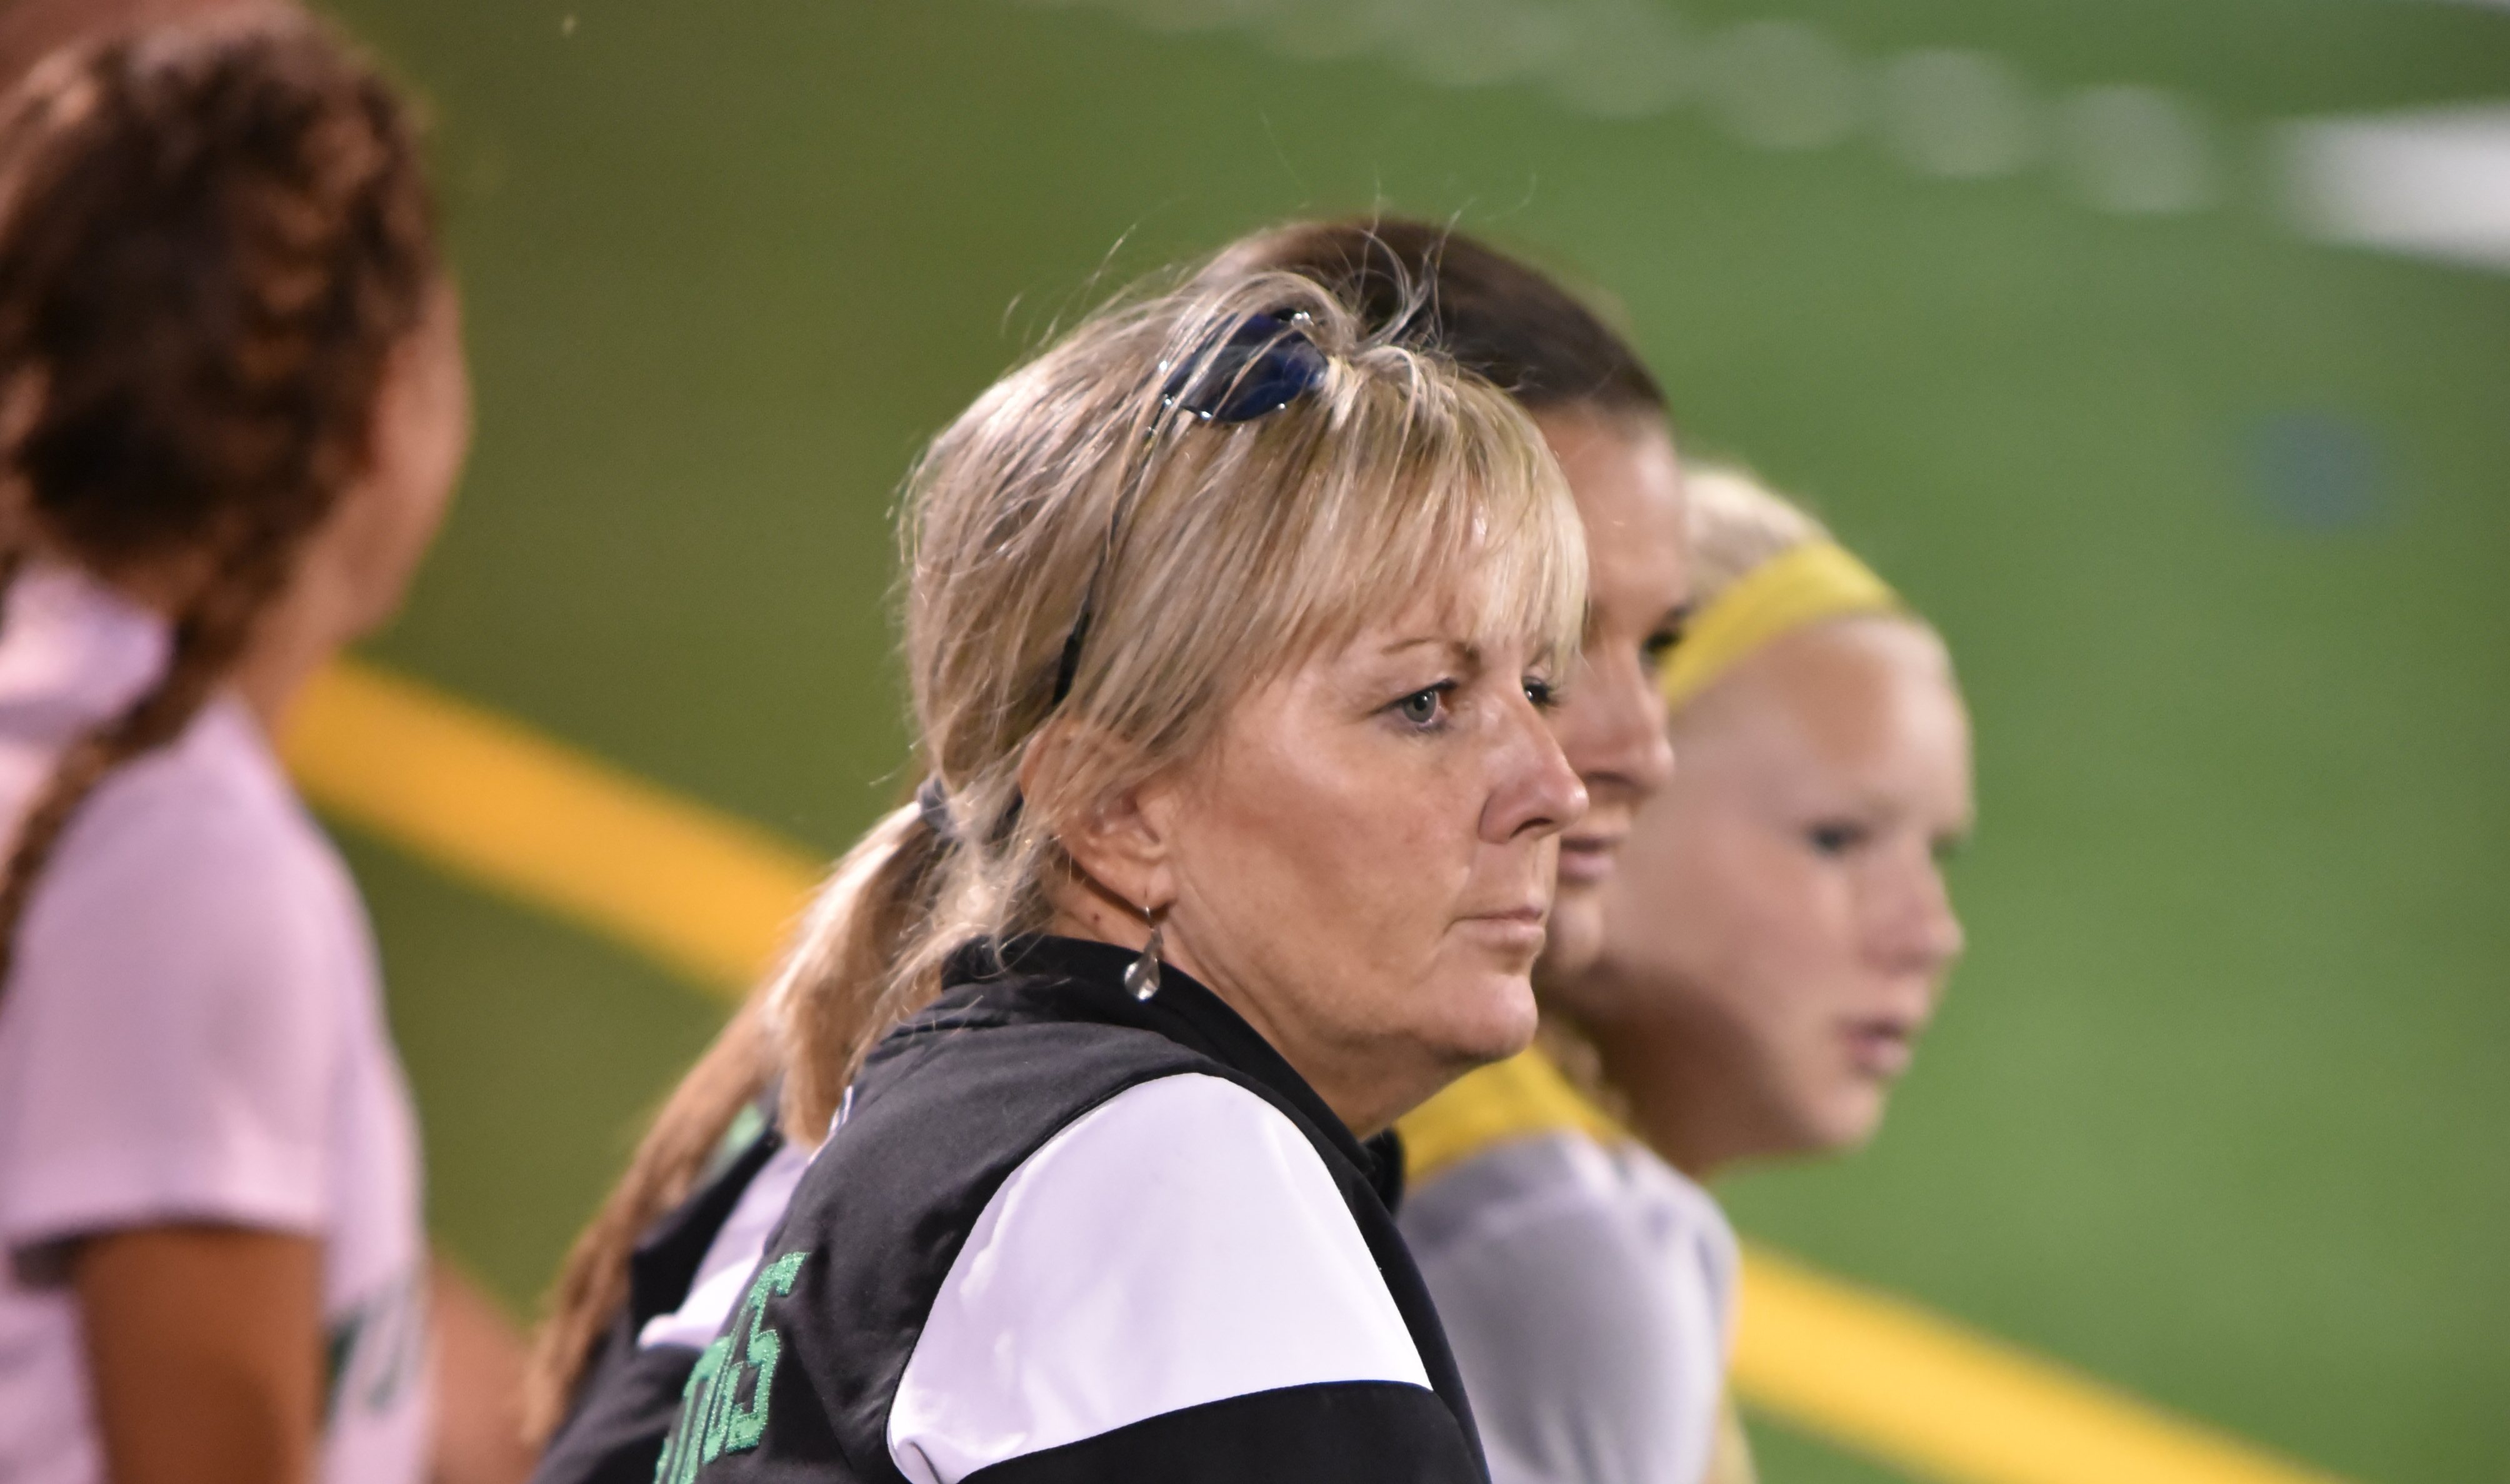 top girls games perennial powers mahtomedi and mounds view meet up mounds view coach terri patraw fields a squad that has 25 goals through four games this season the mustangs will try to continue the trend when they face